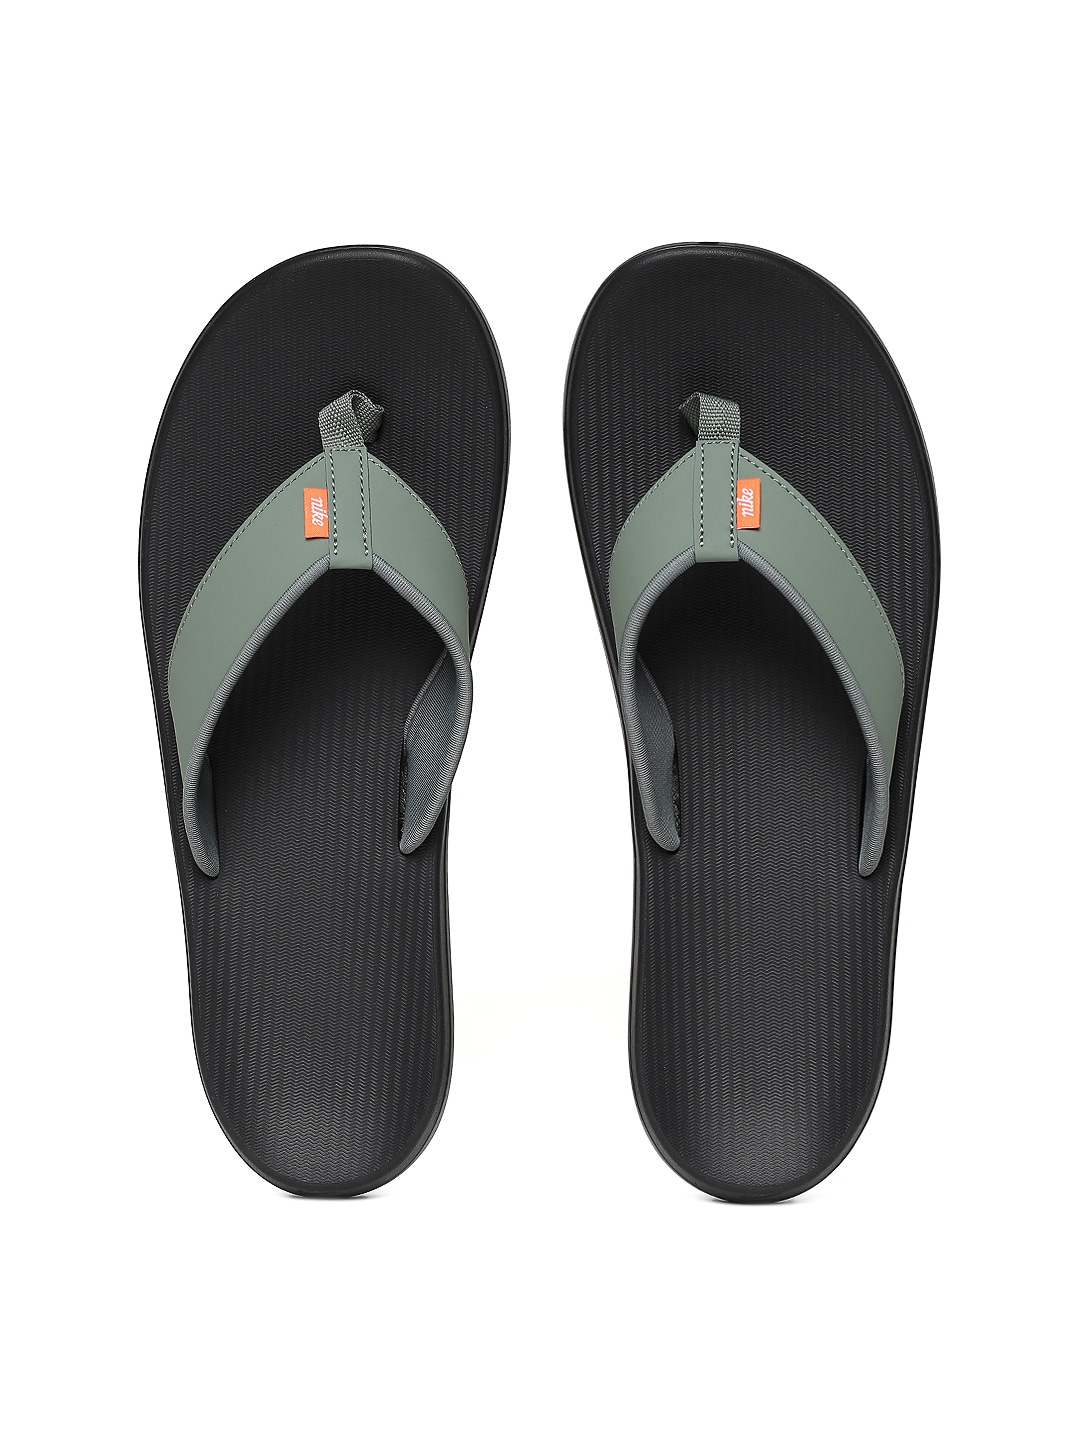 5ee5220bd Nike Limited Edition Flip Flops - Buy Nike Limited Edition Flip Flops  online in India